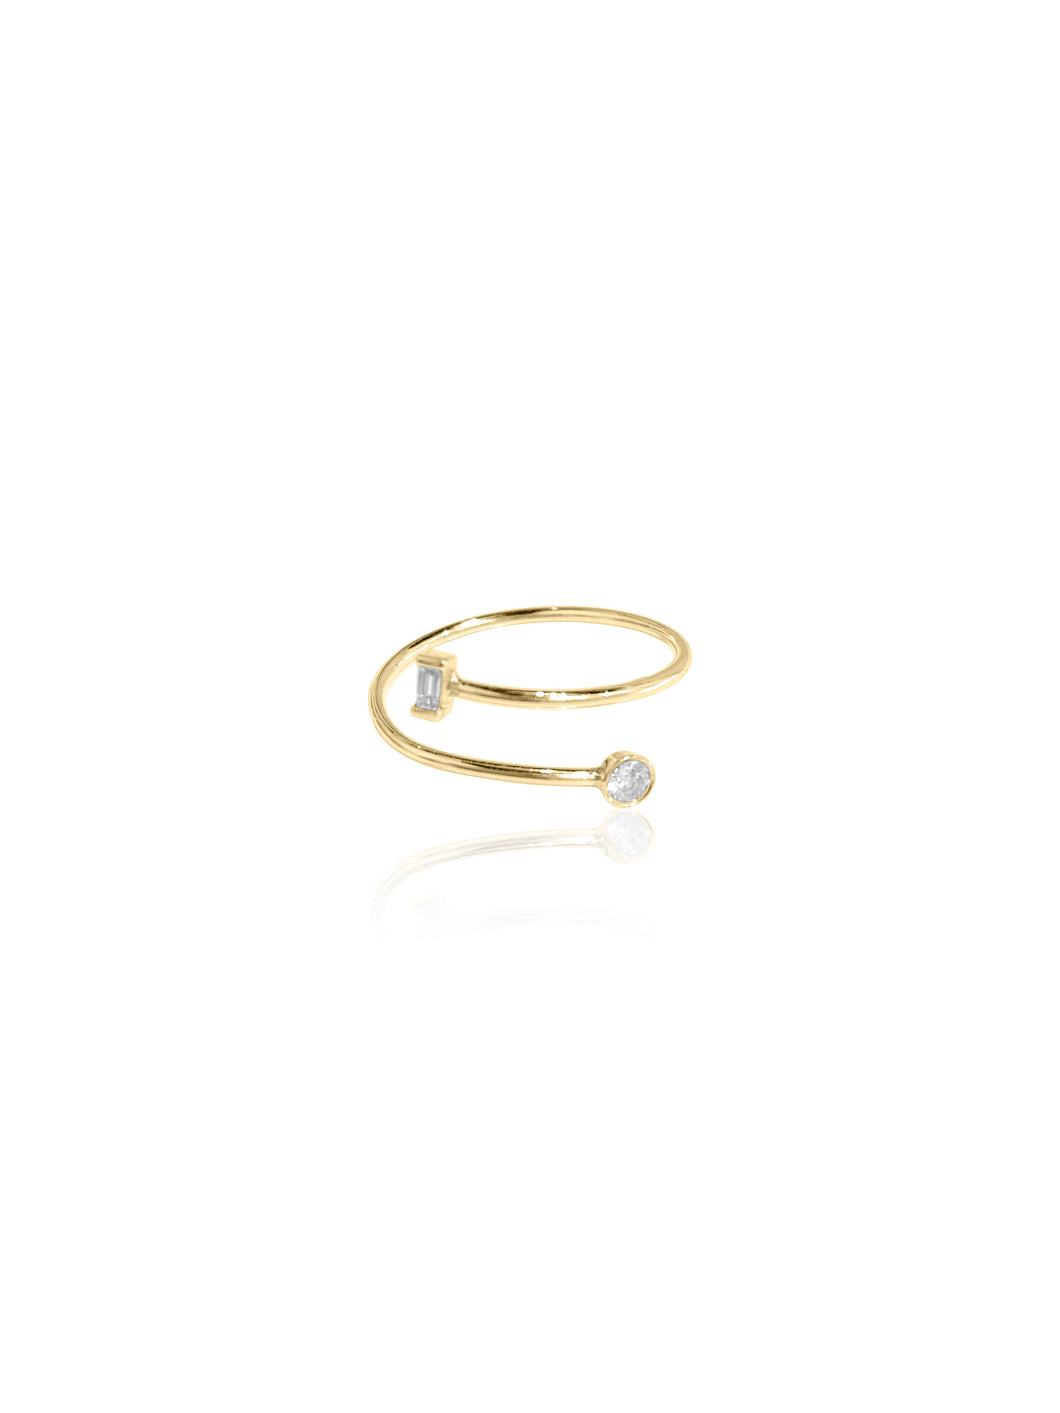 14K Gold Baguette Diamond & Bezel Coil Ring